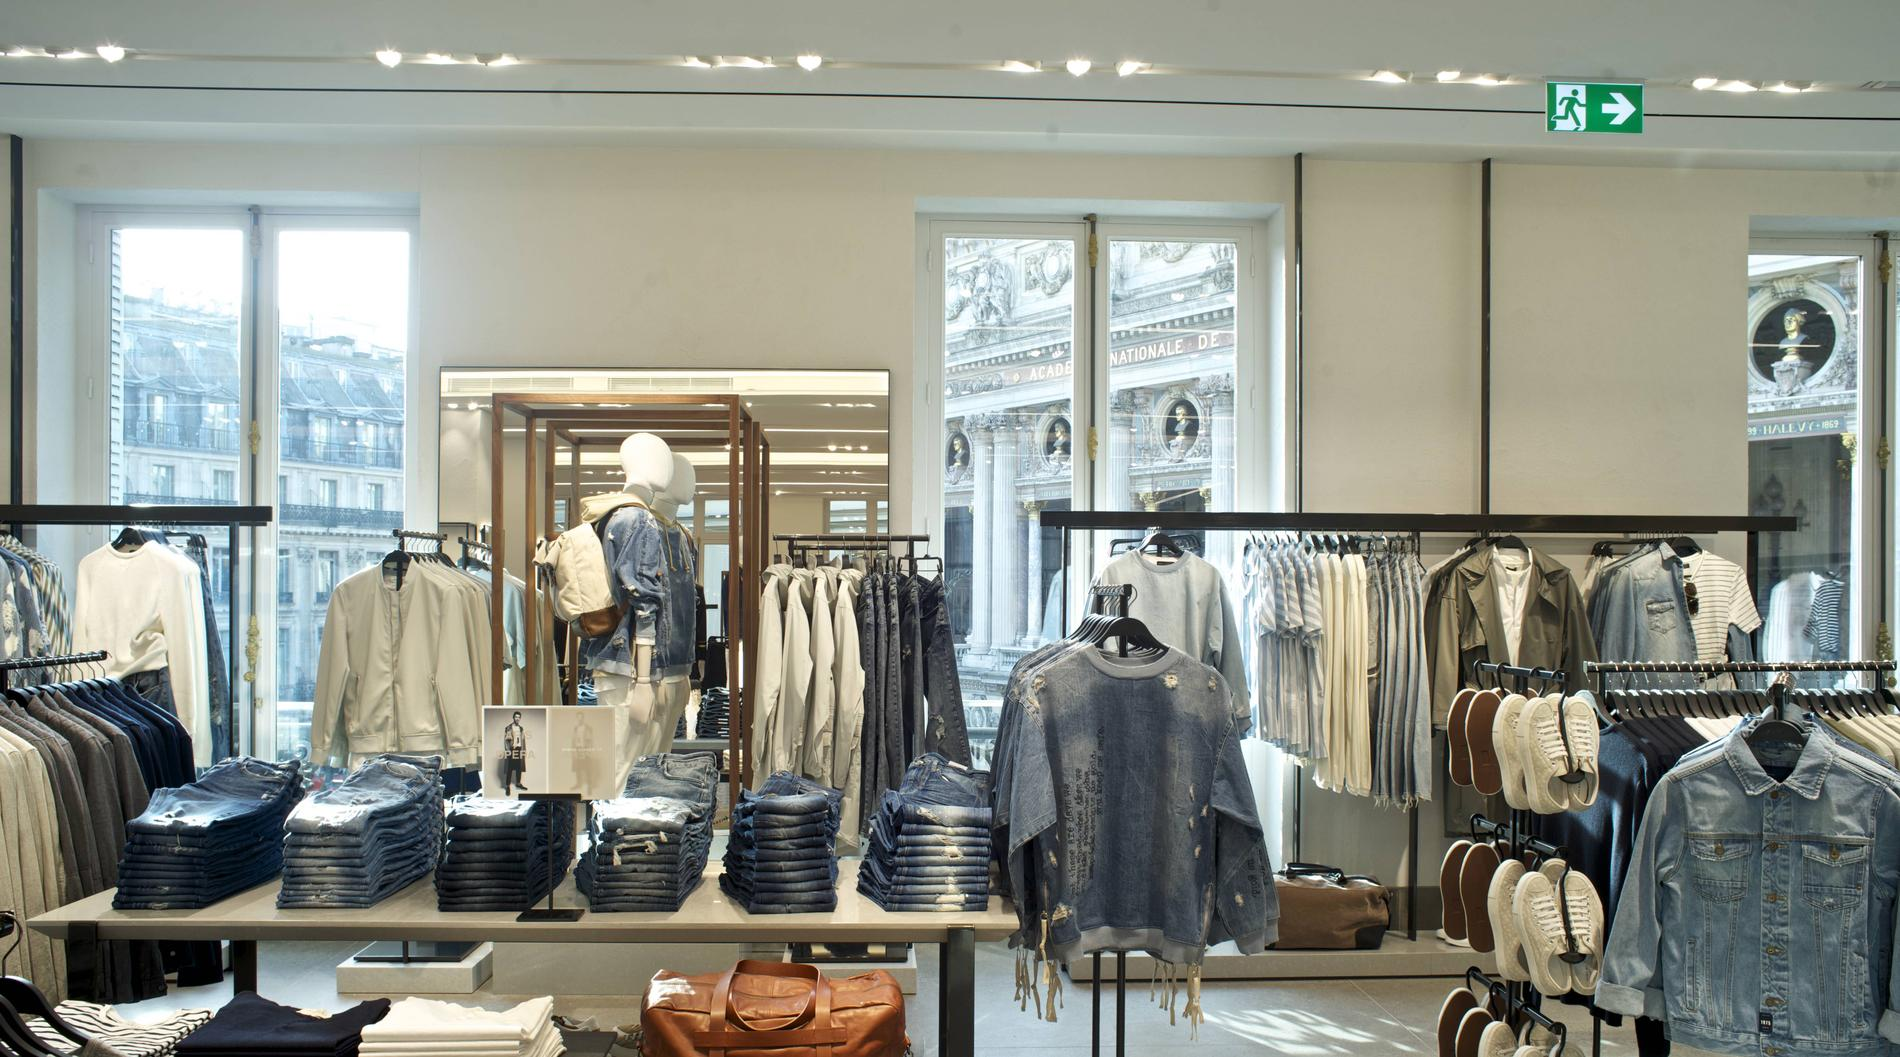 a16b84cf88e4 ... Visite en images du plus grand magasin Zara de France - la mode homme